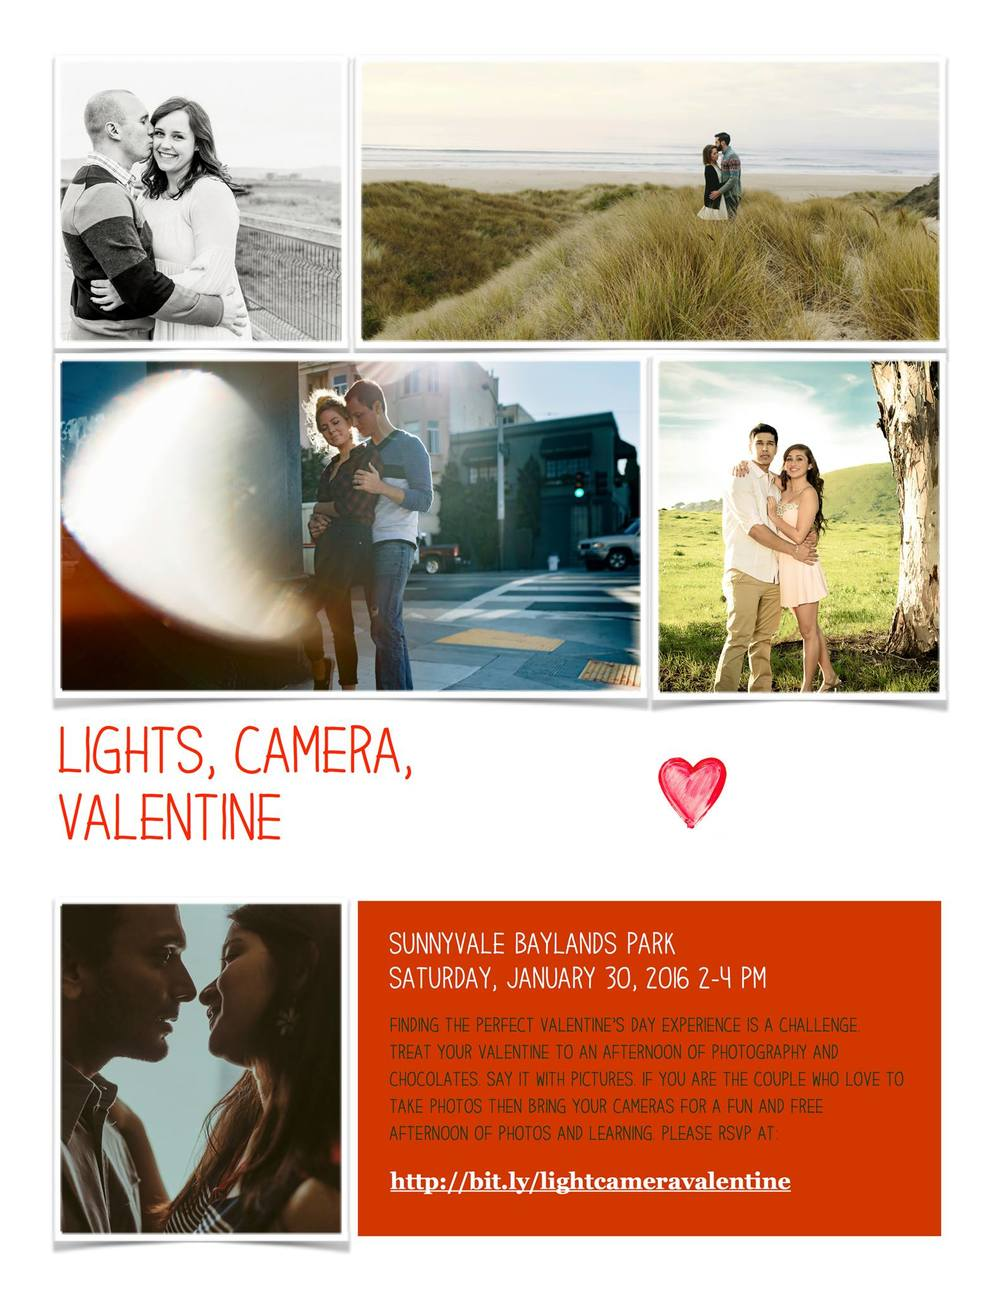 free-valentines-day-photography-event-bay-area-afewgoodclicks